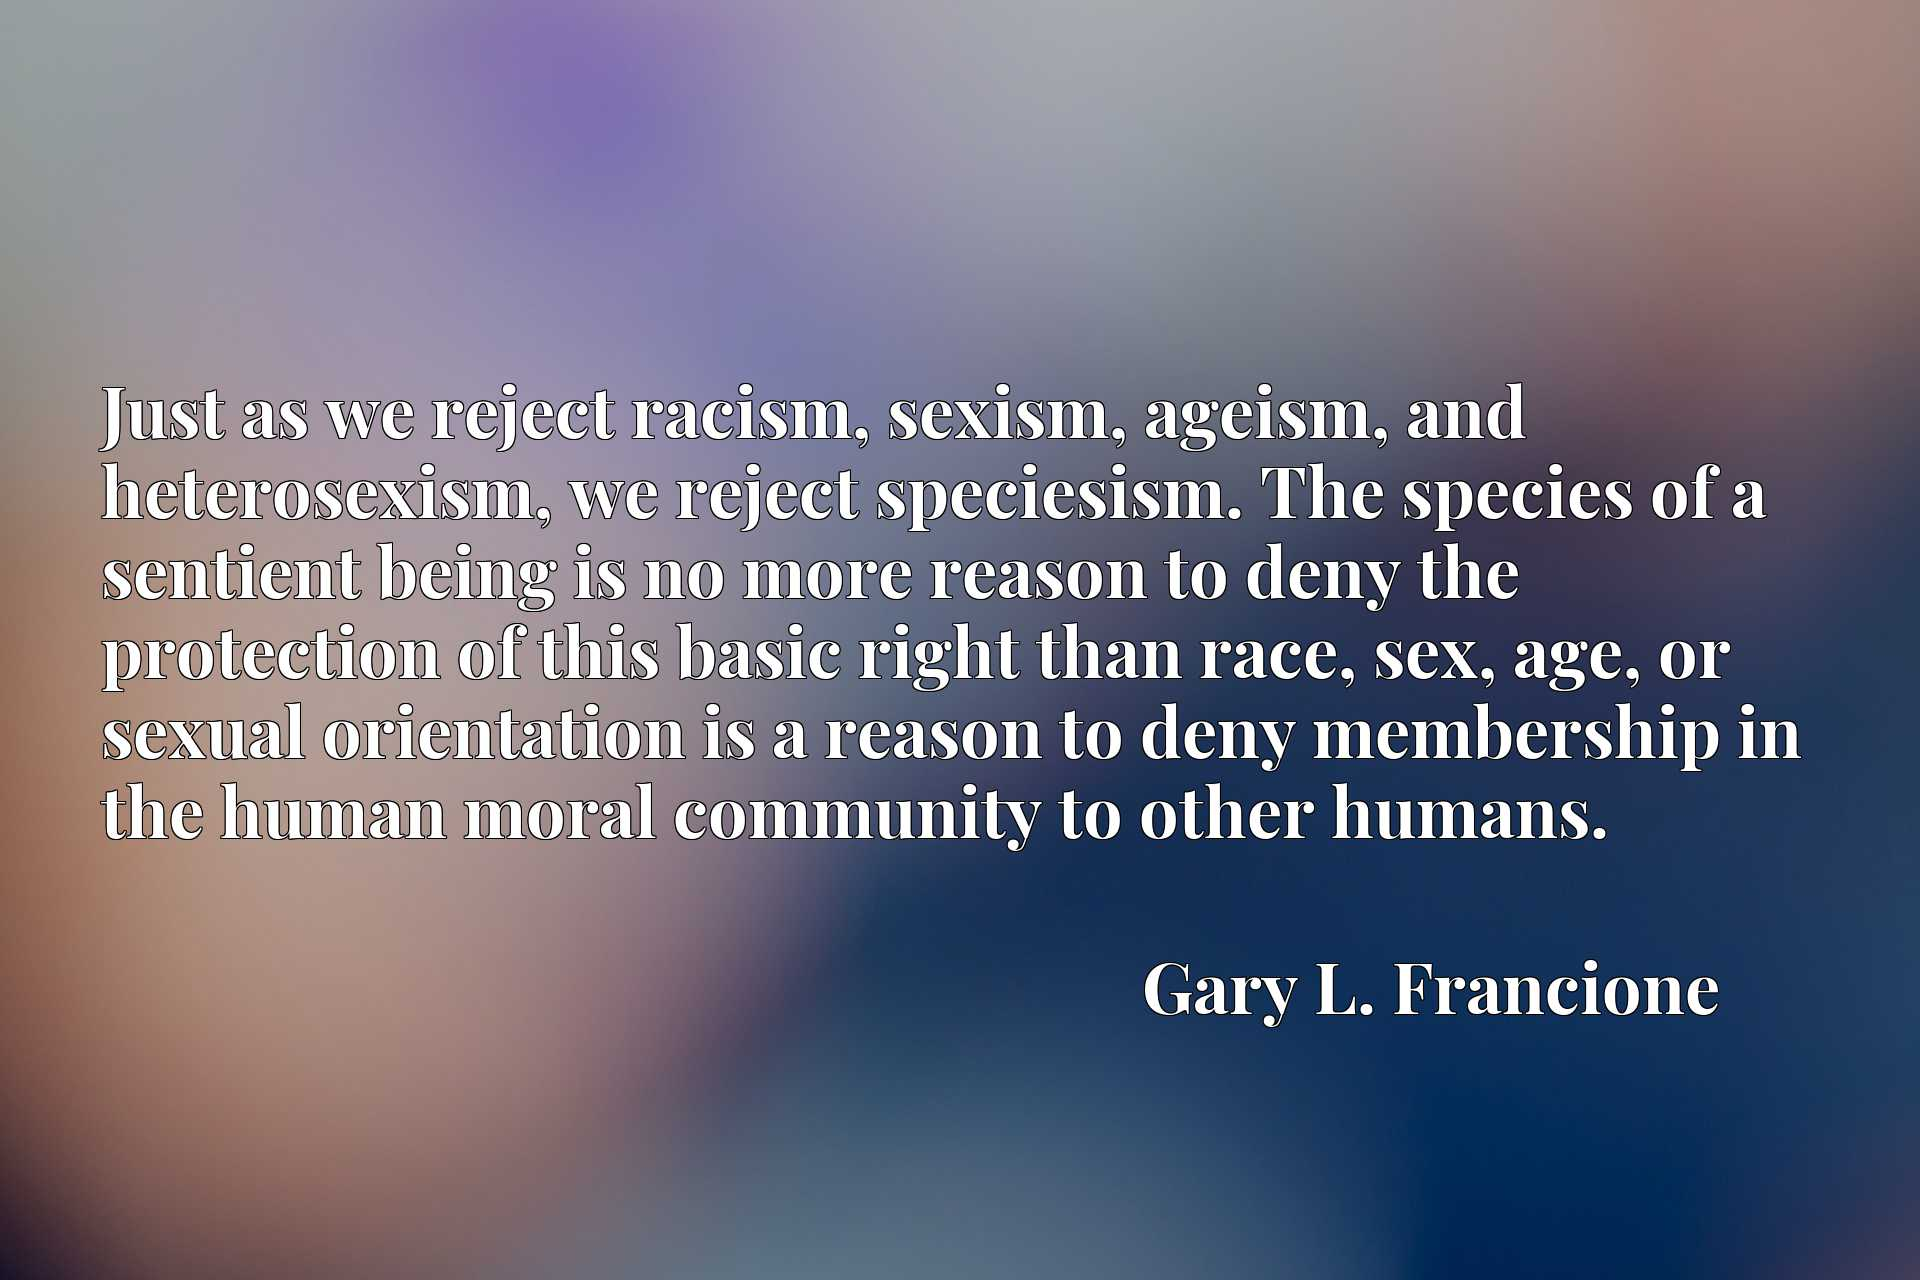 Just as we reject racism, sexism, ageism, and heterosexism, we reject speciesism. The species of a sentient being is no more reason to deny the protection of this basic right than race, sex, age, or sexual orientation is a reason to deny membership in the human moral community to other humans.